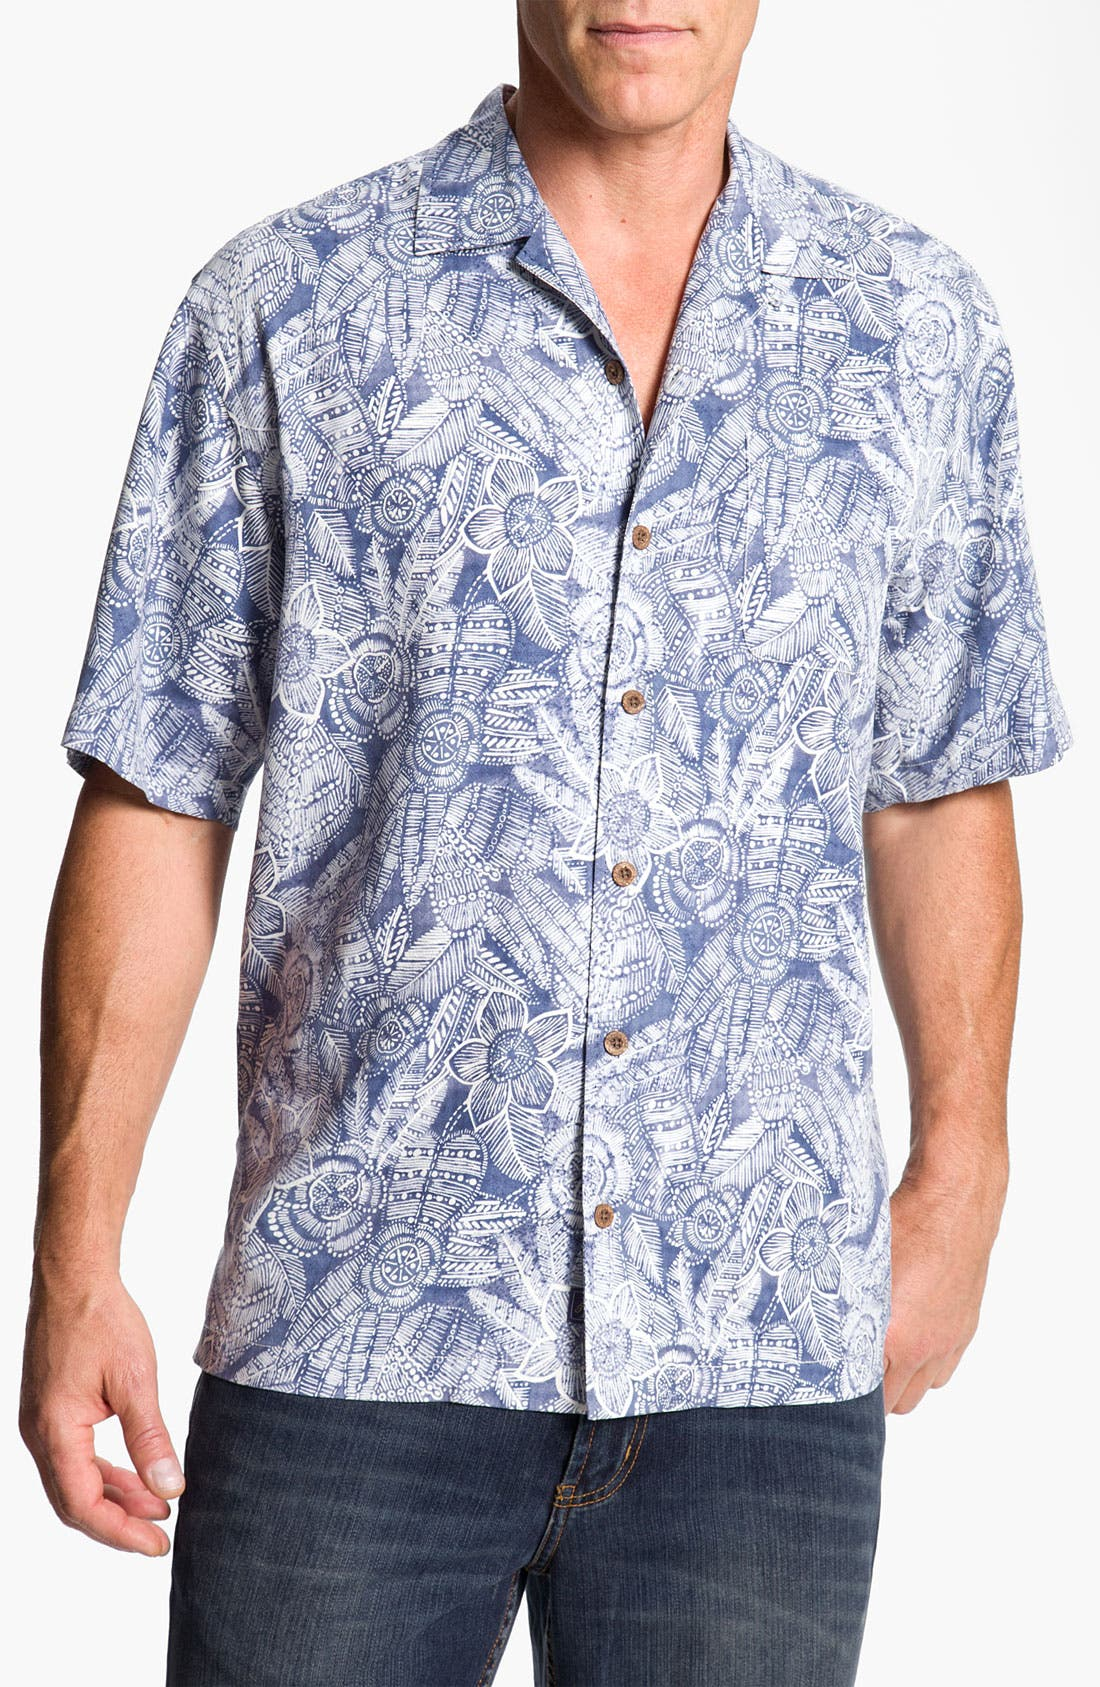 Main Image - Tommy Bahama 'Bou-Teak Floral' Silk Campshirt